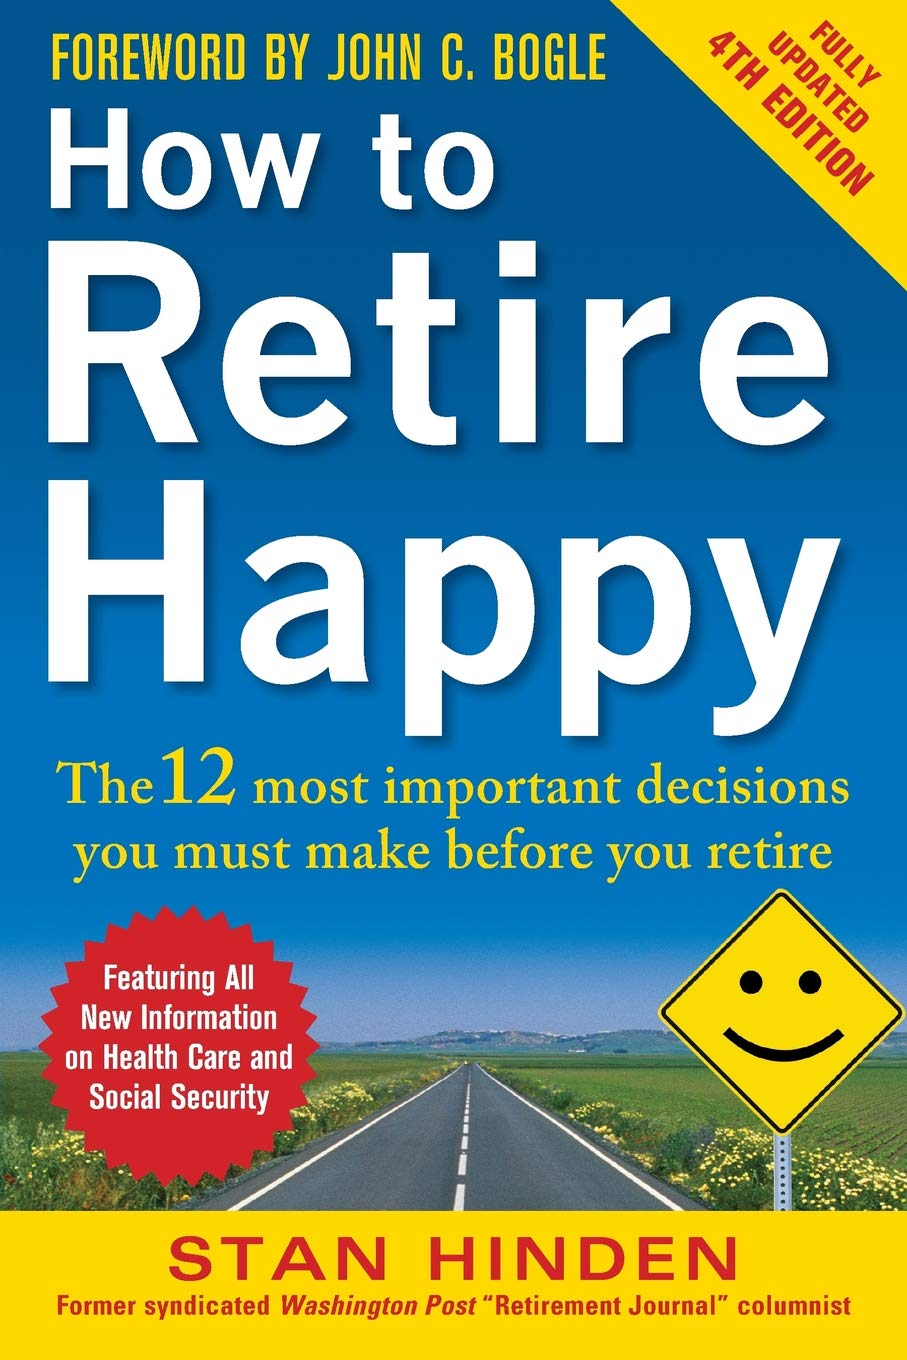 Stan Hinden - How to Retire Happy: The 12 Most Important Decisions You Must Make Before You Retire